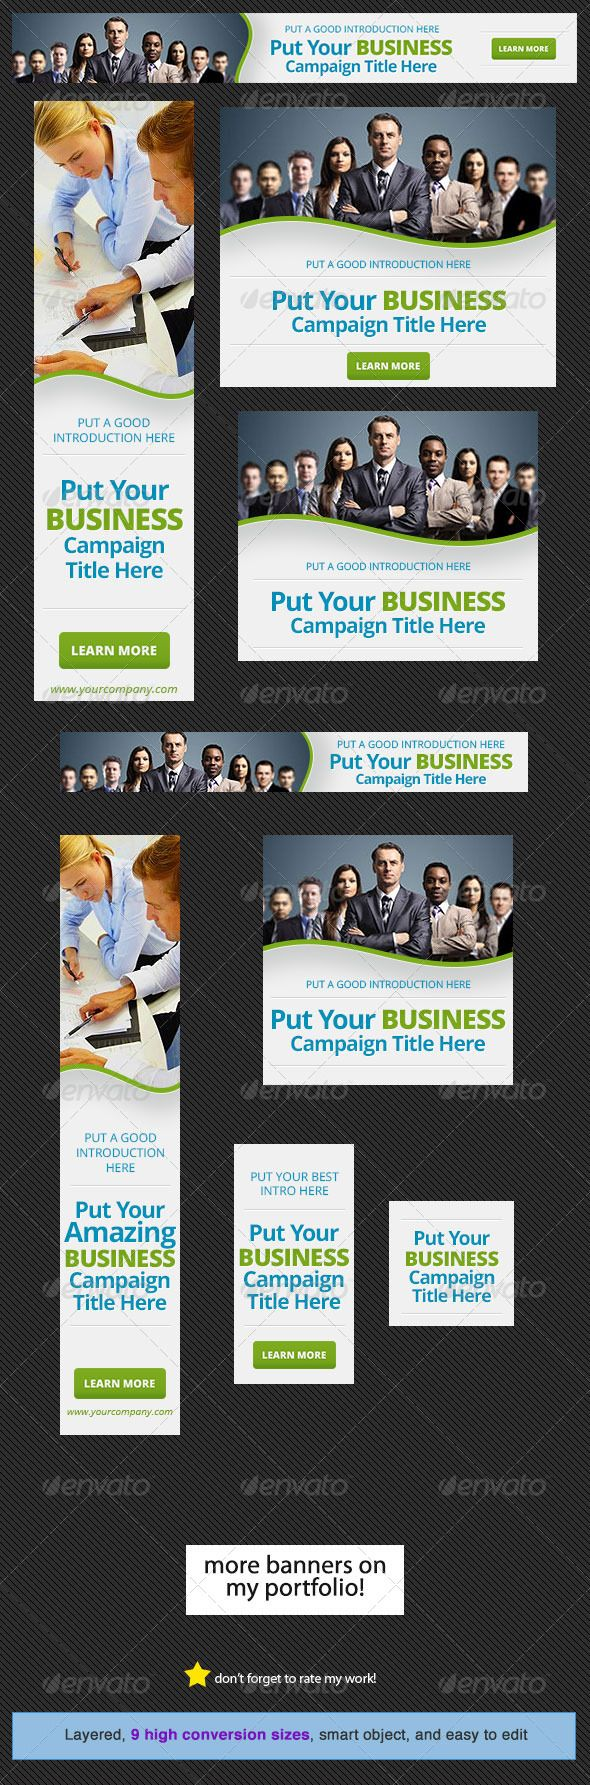 Design a banner for your website - Corporate Web Banner Design Template 15